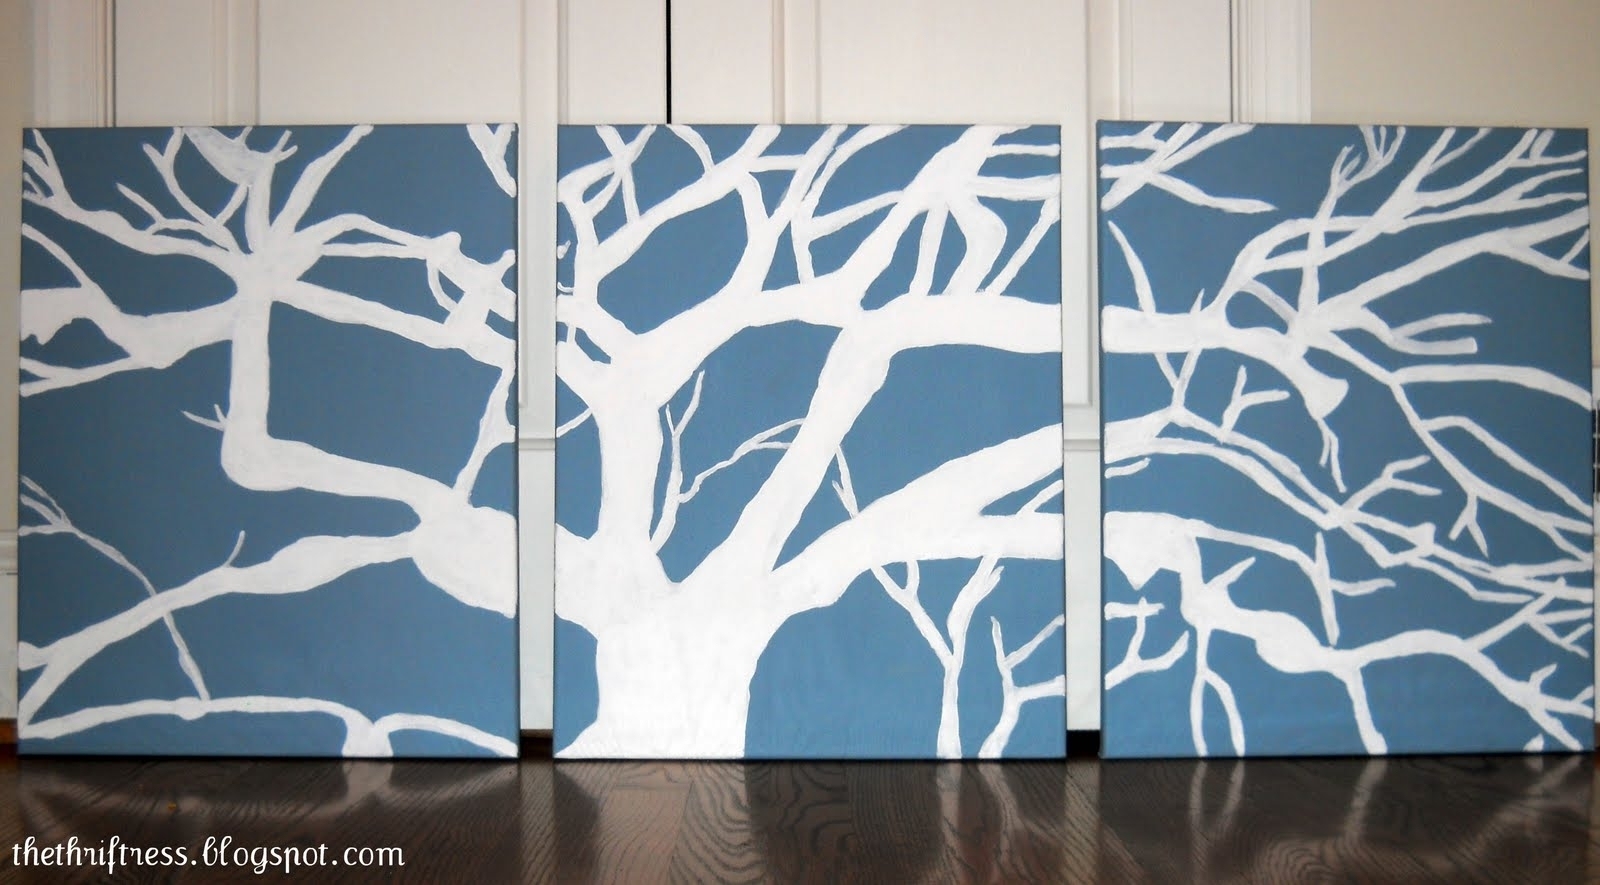 Diy Wall Art Stencils Paint Fabric – Dma Homes | #37854 Intended For Latest Textured Fabric Wall Art (View 7 of 15)